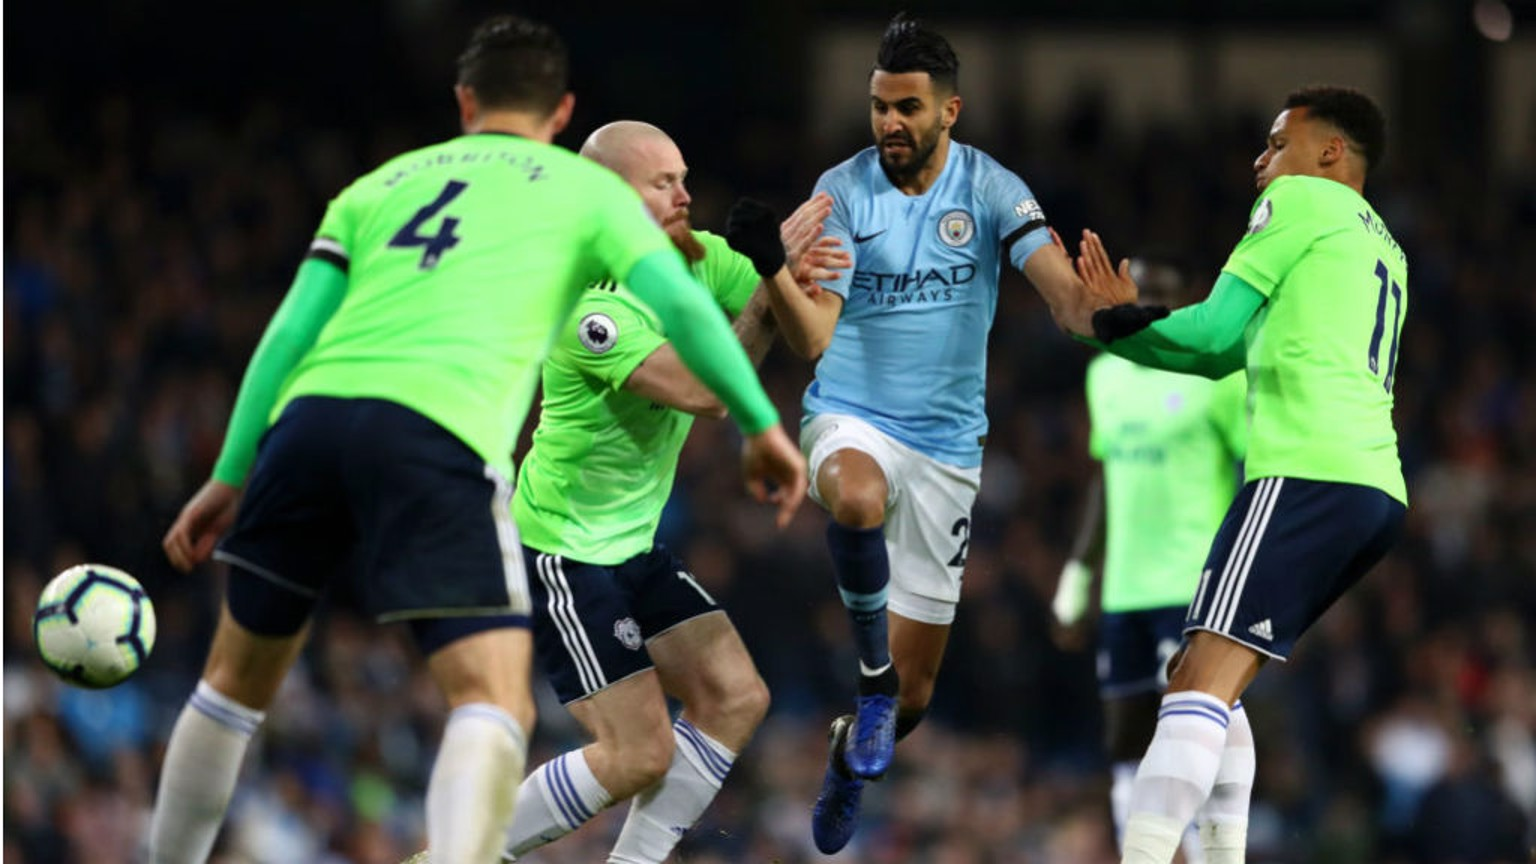 NO ENTRY: Riyad Mahrez comes up against a Cardiff road block